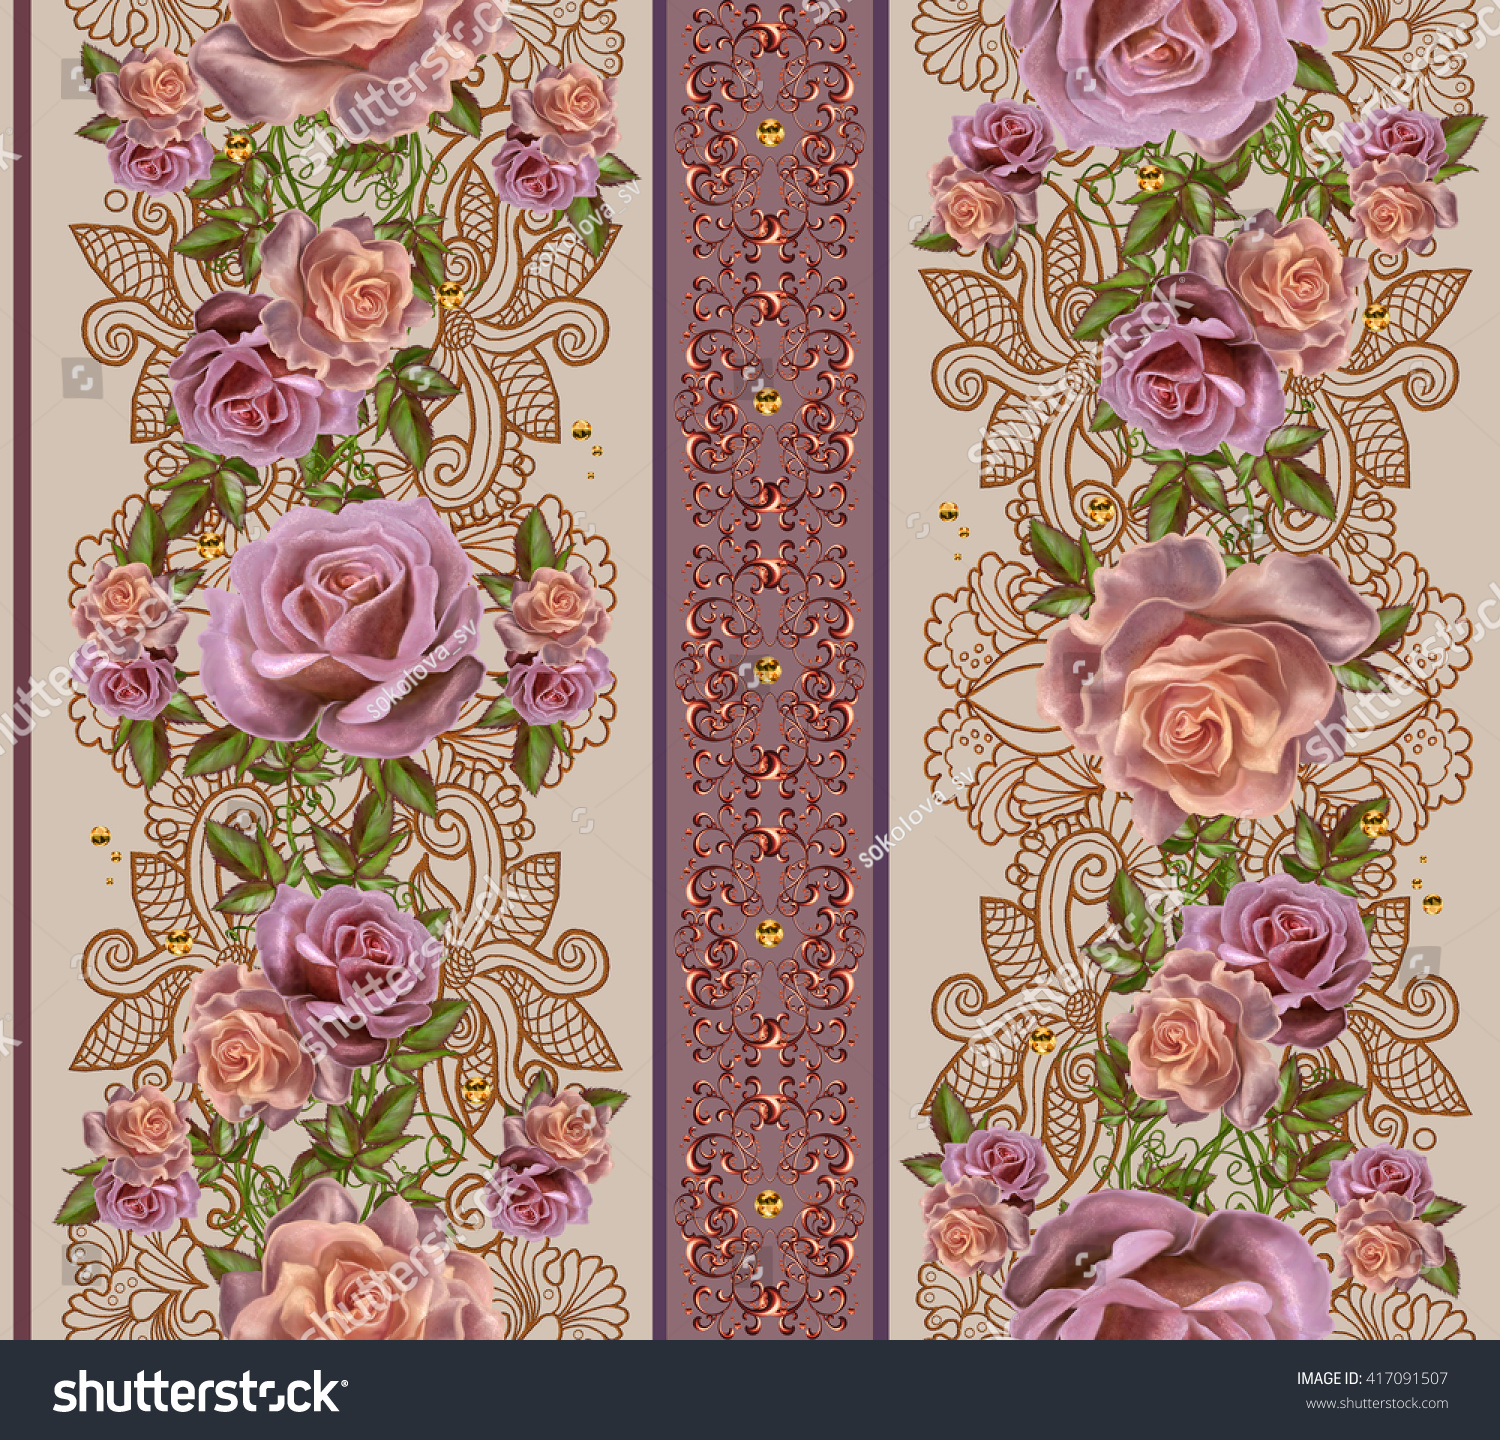 Vertical floral border Pattern seamless Old style Garland of pink and orange roses gold border gold mosaic